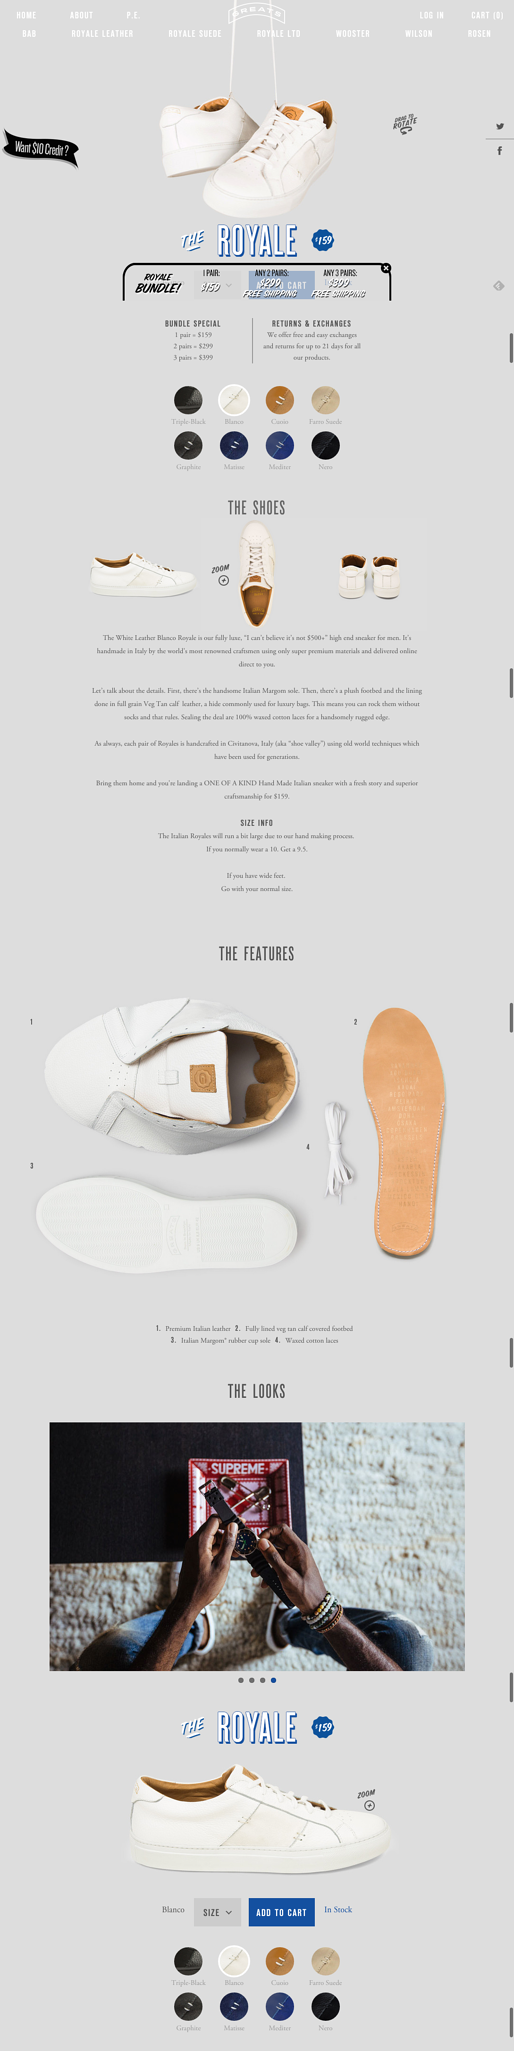 Greats ecommerce product page